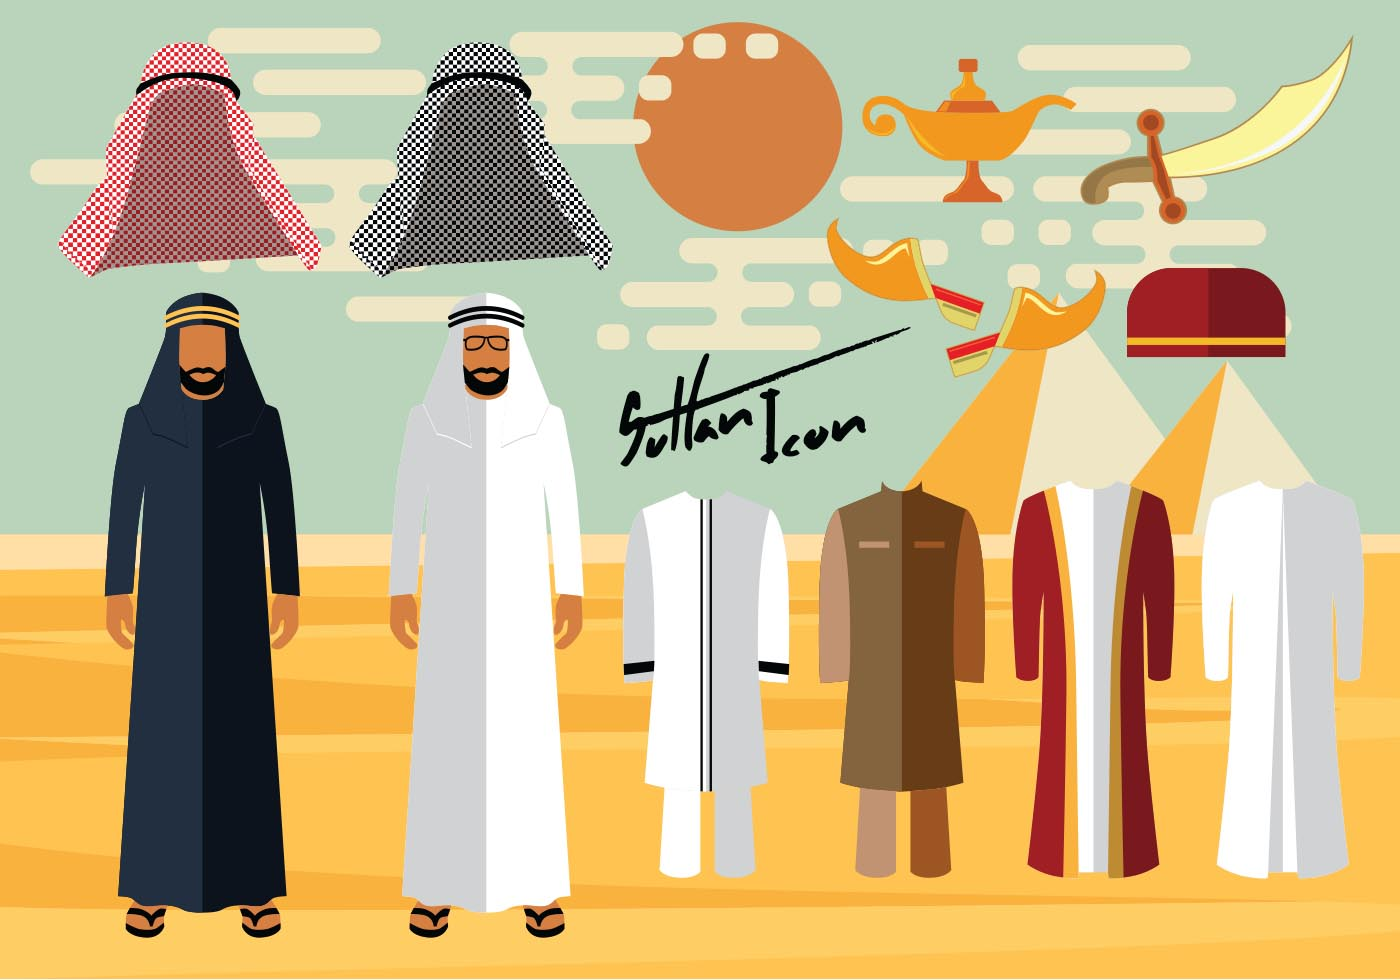 Arab culture clothes clipart image library Arab Man Free Vector Art - (3,531 Free Downloads) image library